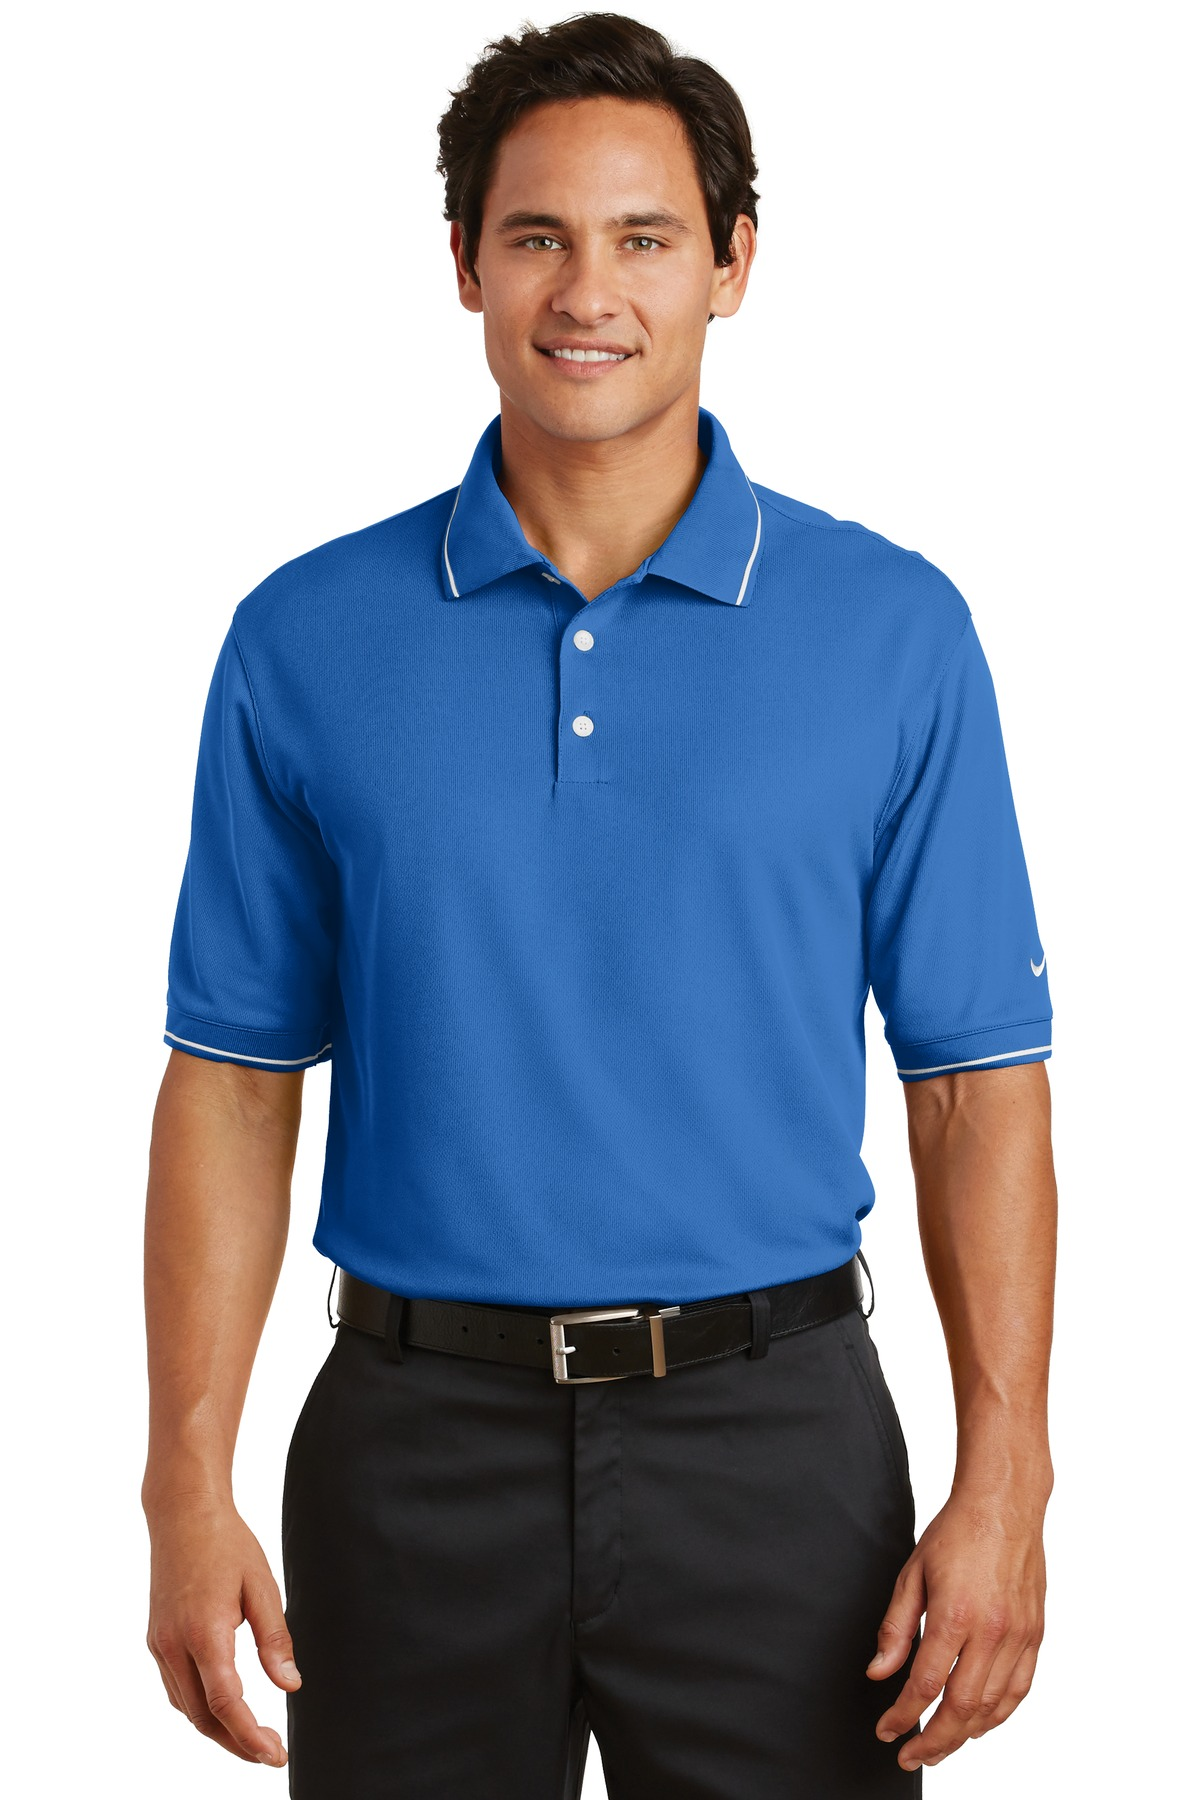 Nike Dri-FIT Classic Tipped Polo.  319966 - Pacific Blue